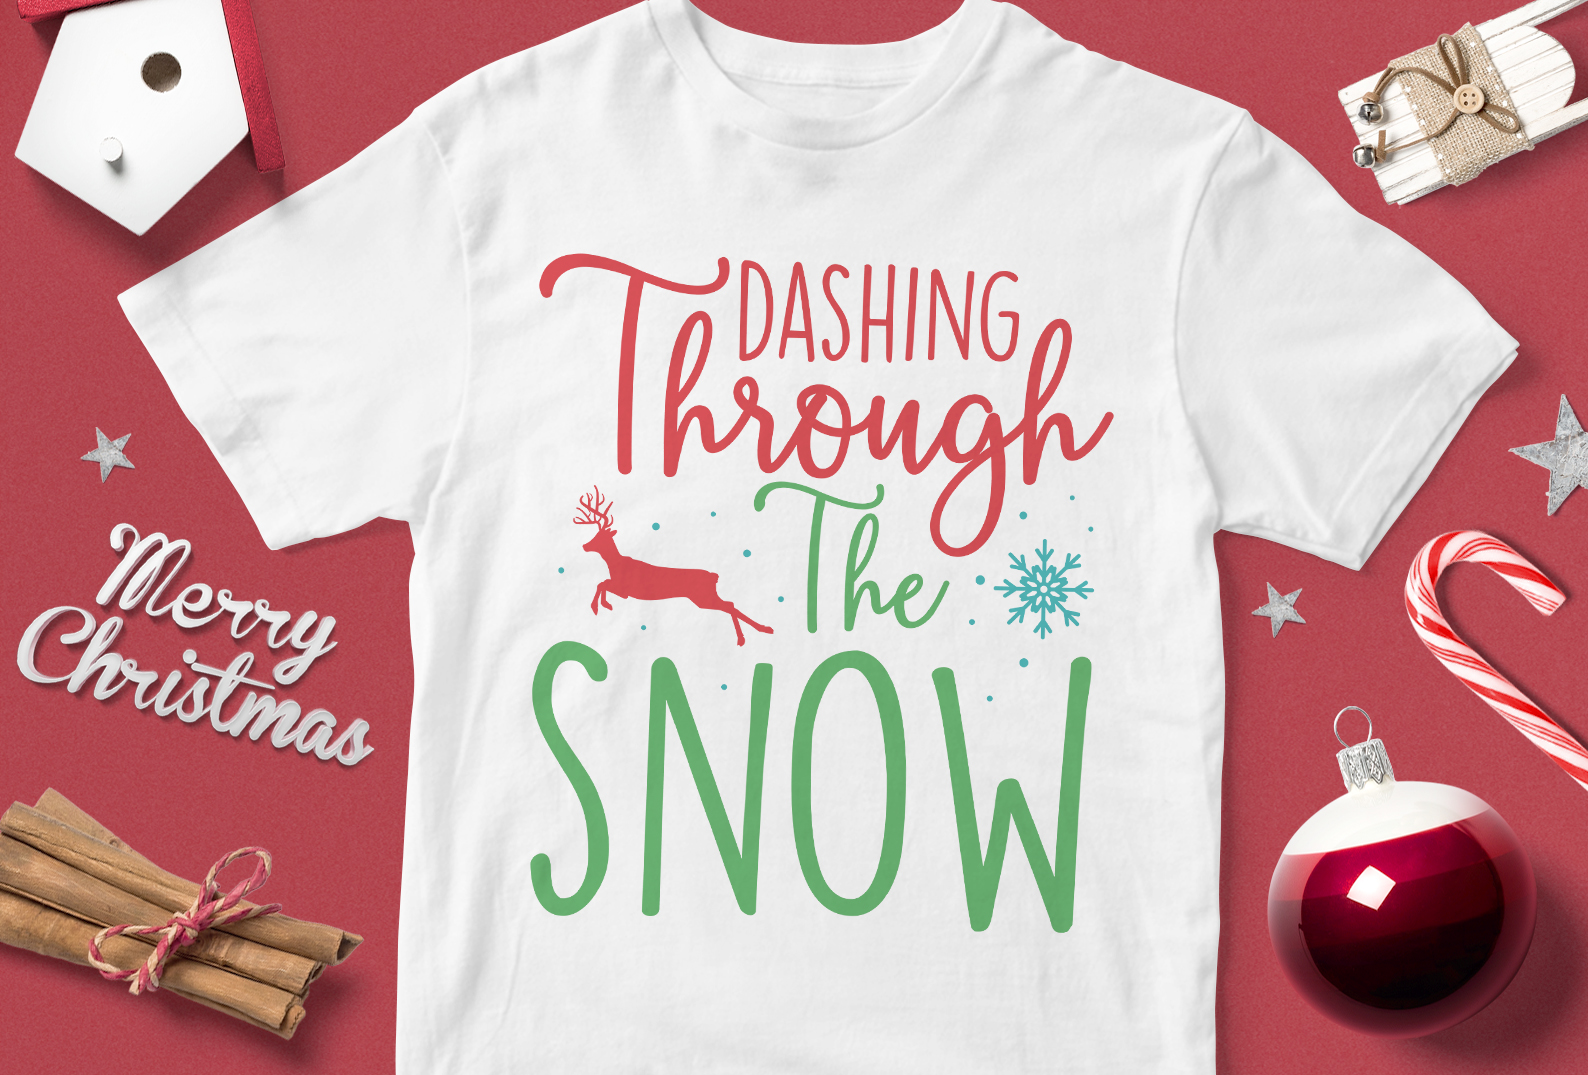 Download Free Dancing Trough The Snow Graphic By Svgsupply Creative Fabrica for Cricut Explore, Silhouette and other cutting machines.